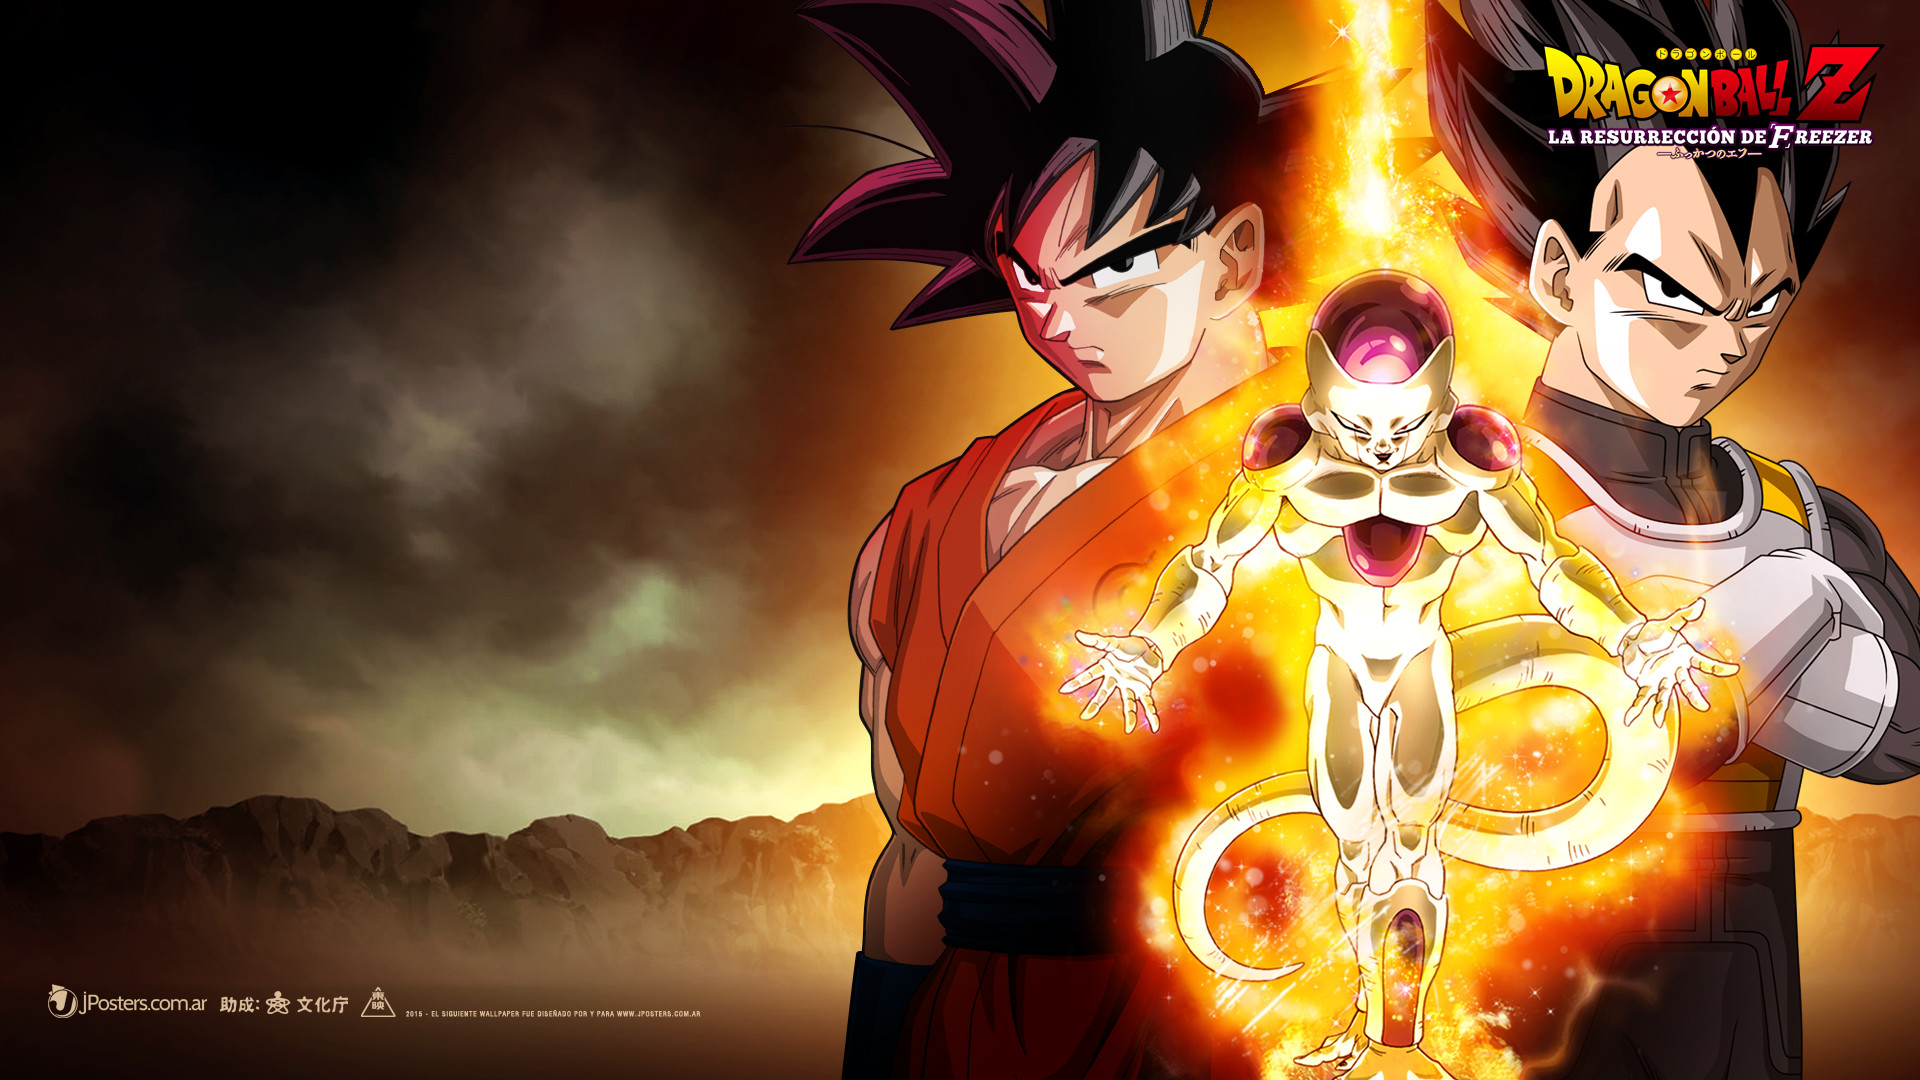 Backgrounds In High Quality: Dragon Ball Z by Ngan Easterwood, April 7, 2015